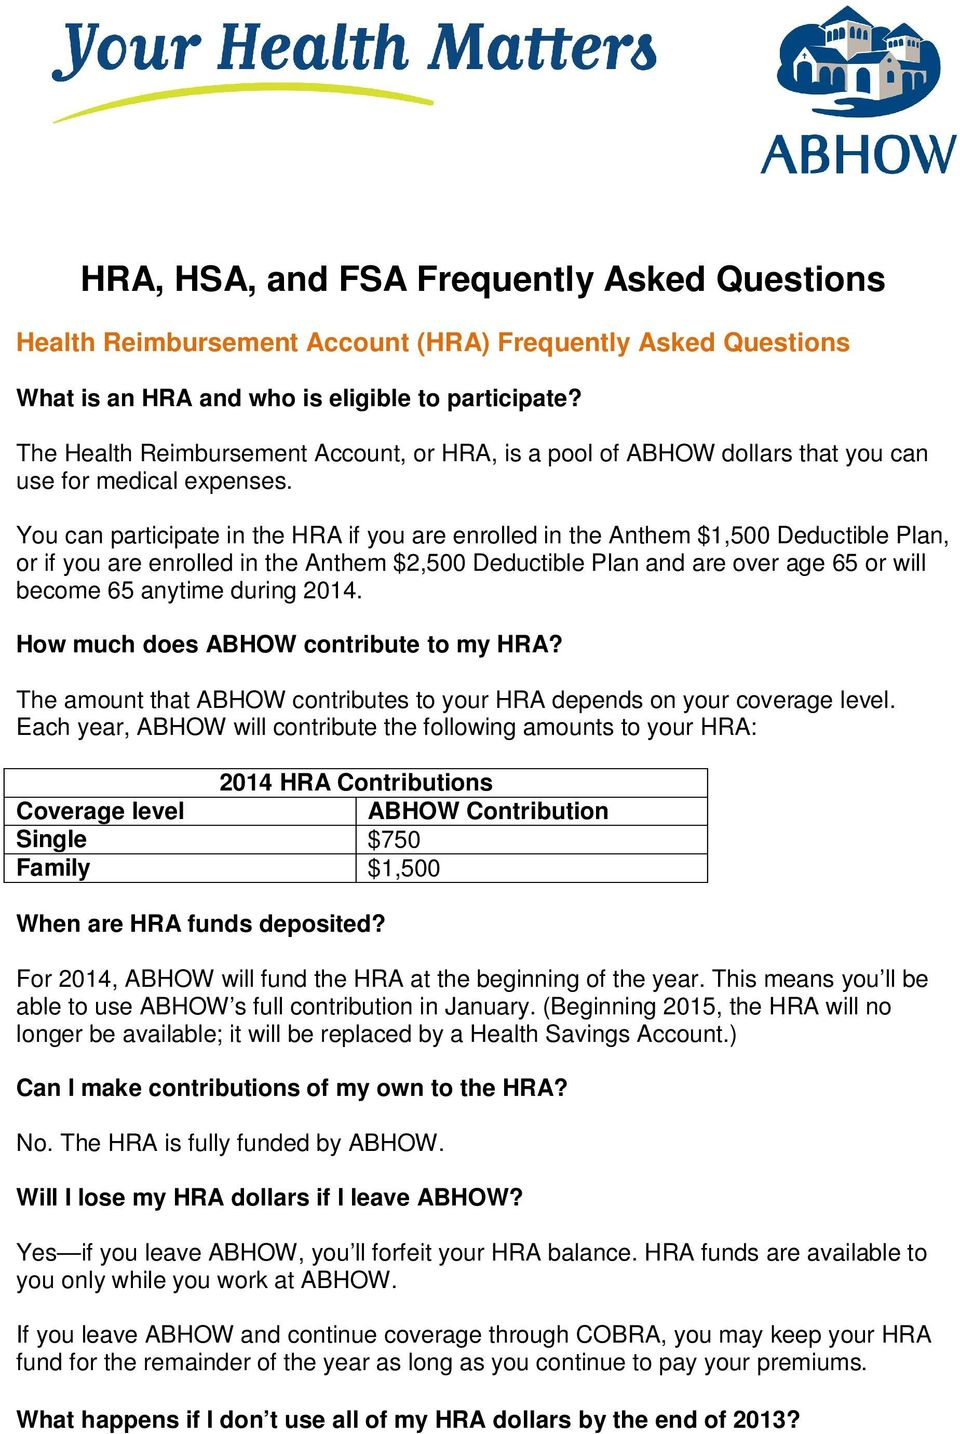 You can participate in the HRA if you are enrolled in the Anthem $1,500 Deductible Plan, or if you are enrolled in the Anthem $2,500 Deductible Plan and are over age 65 or will become 65 anytime